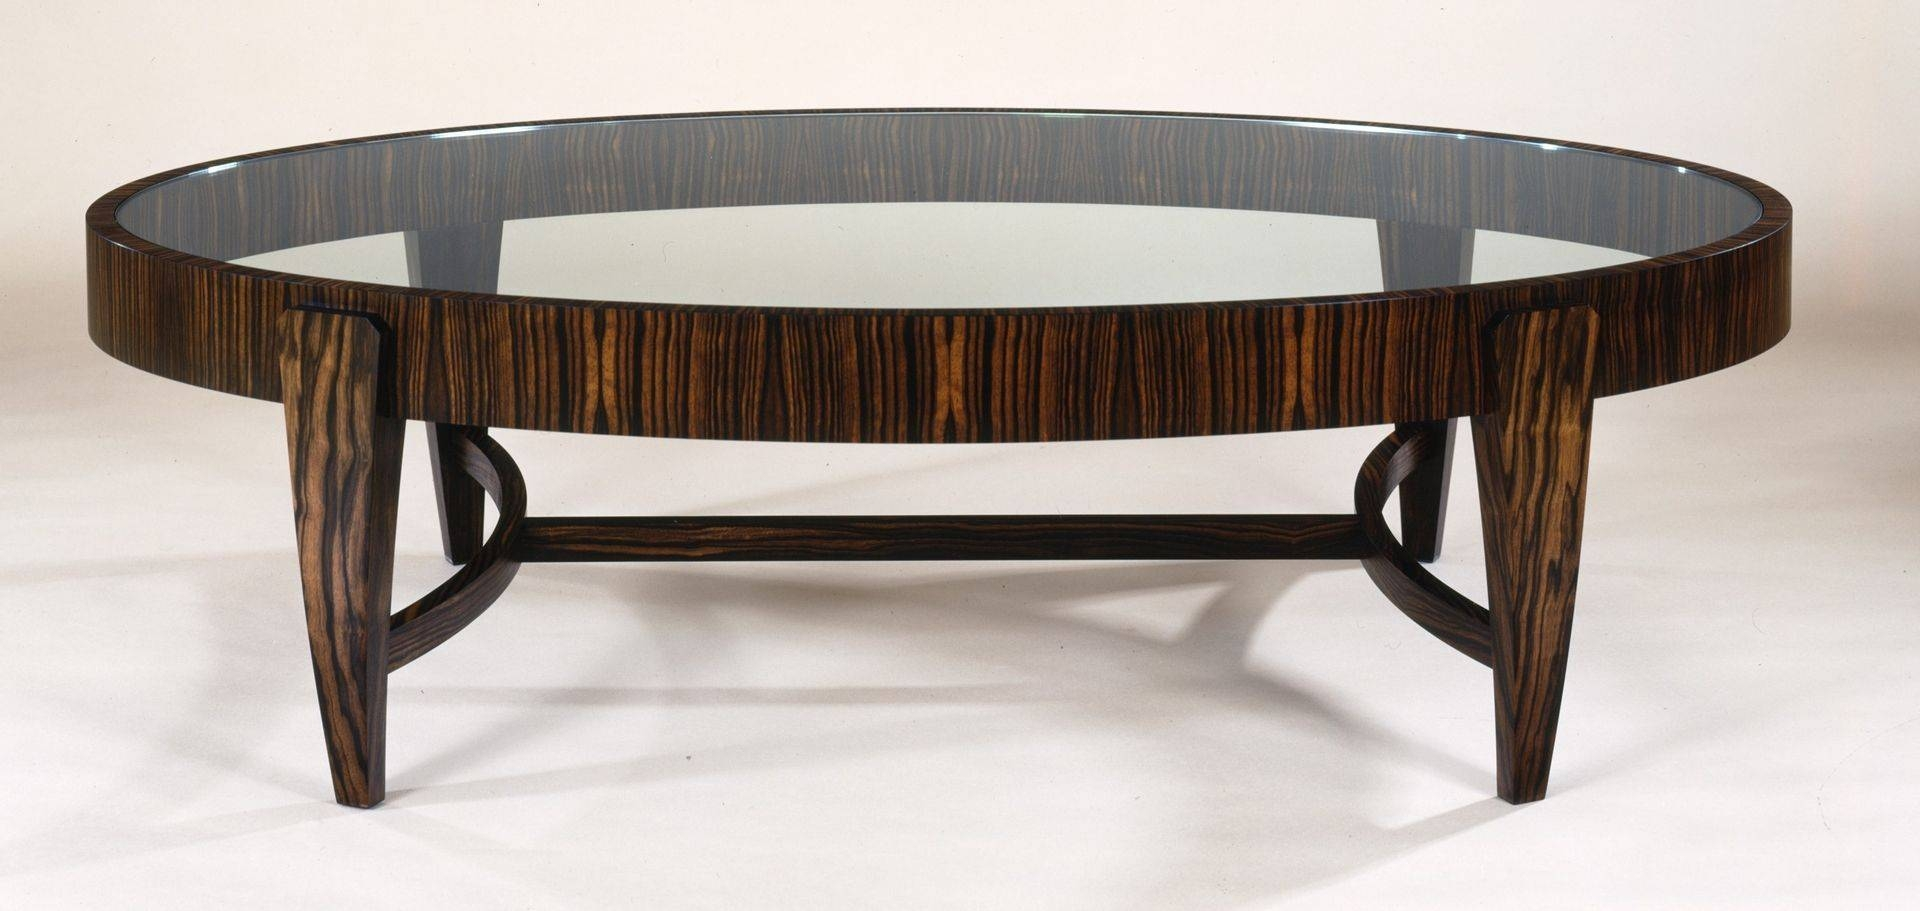 Wood Oval Coffee Table : Axiomaticaorg - Jericho Mafjar Project within Oval Wooden Coffee Tables (Image 30 of 30)